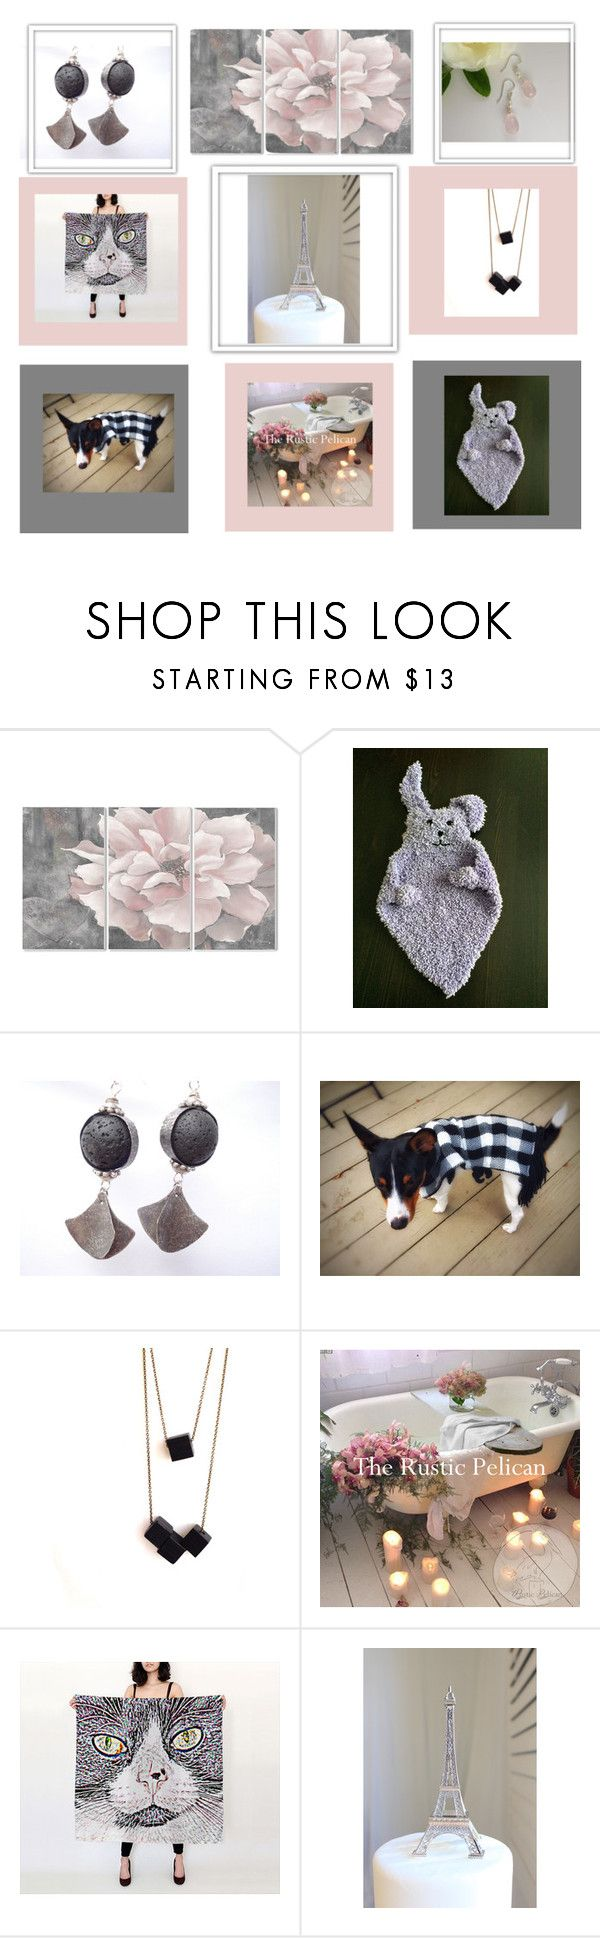 Blush by therusticpelican on Polyvore featuring Stupell, Tela Beauty Organics, modern, contemporary, rustic and vintage